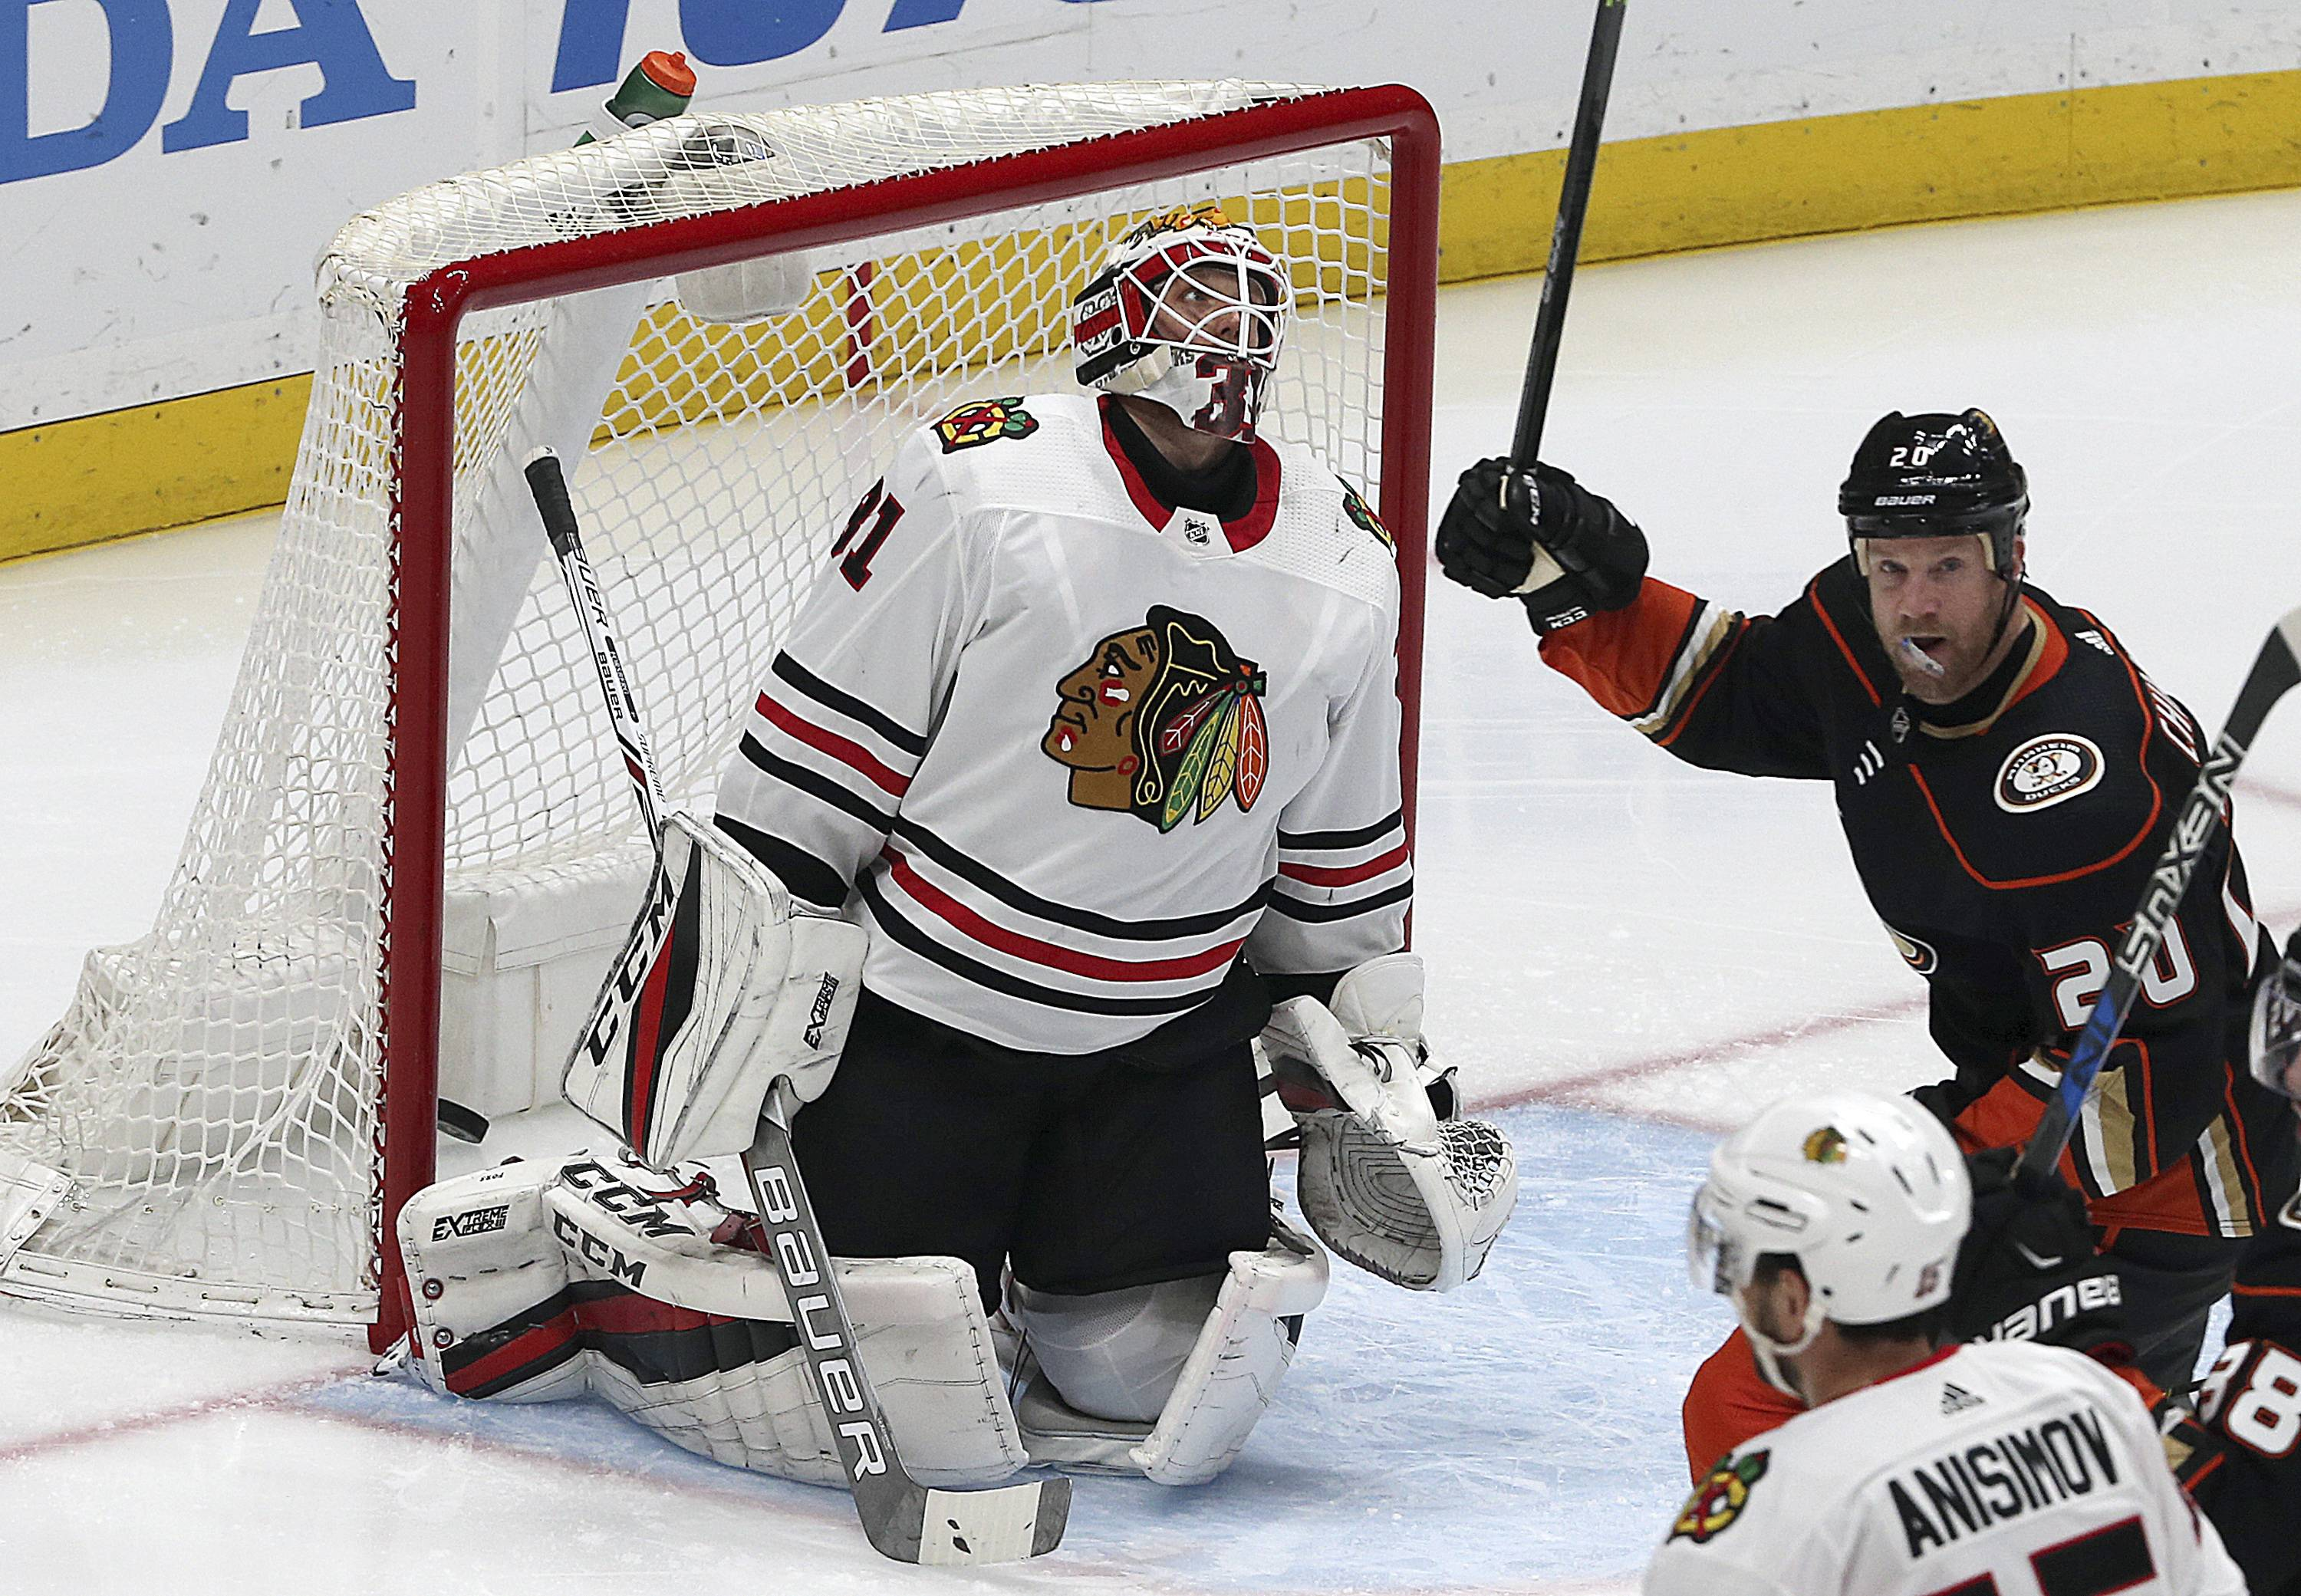 Anaheim Ducks left winger Jason Chimera (20) celebrates a goal by defenseman Marcus Pettersson (not shown) past Chicago Blackhawks goalie Anton Forsberg (31) in the second period of an NHL hockey game in Anaheim, Calif., Sunday, March 4, 2018.